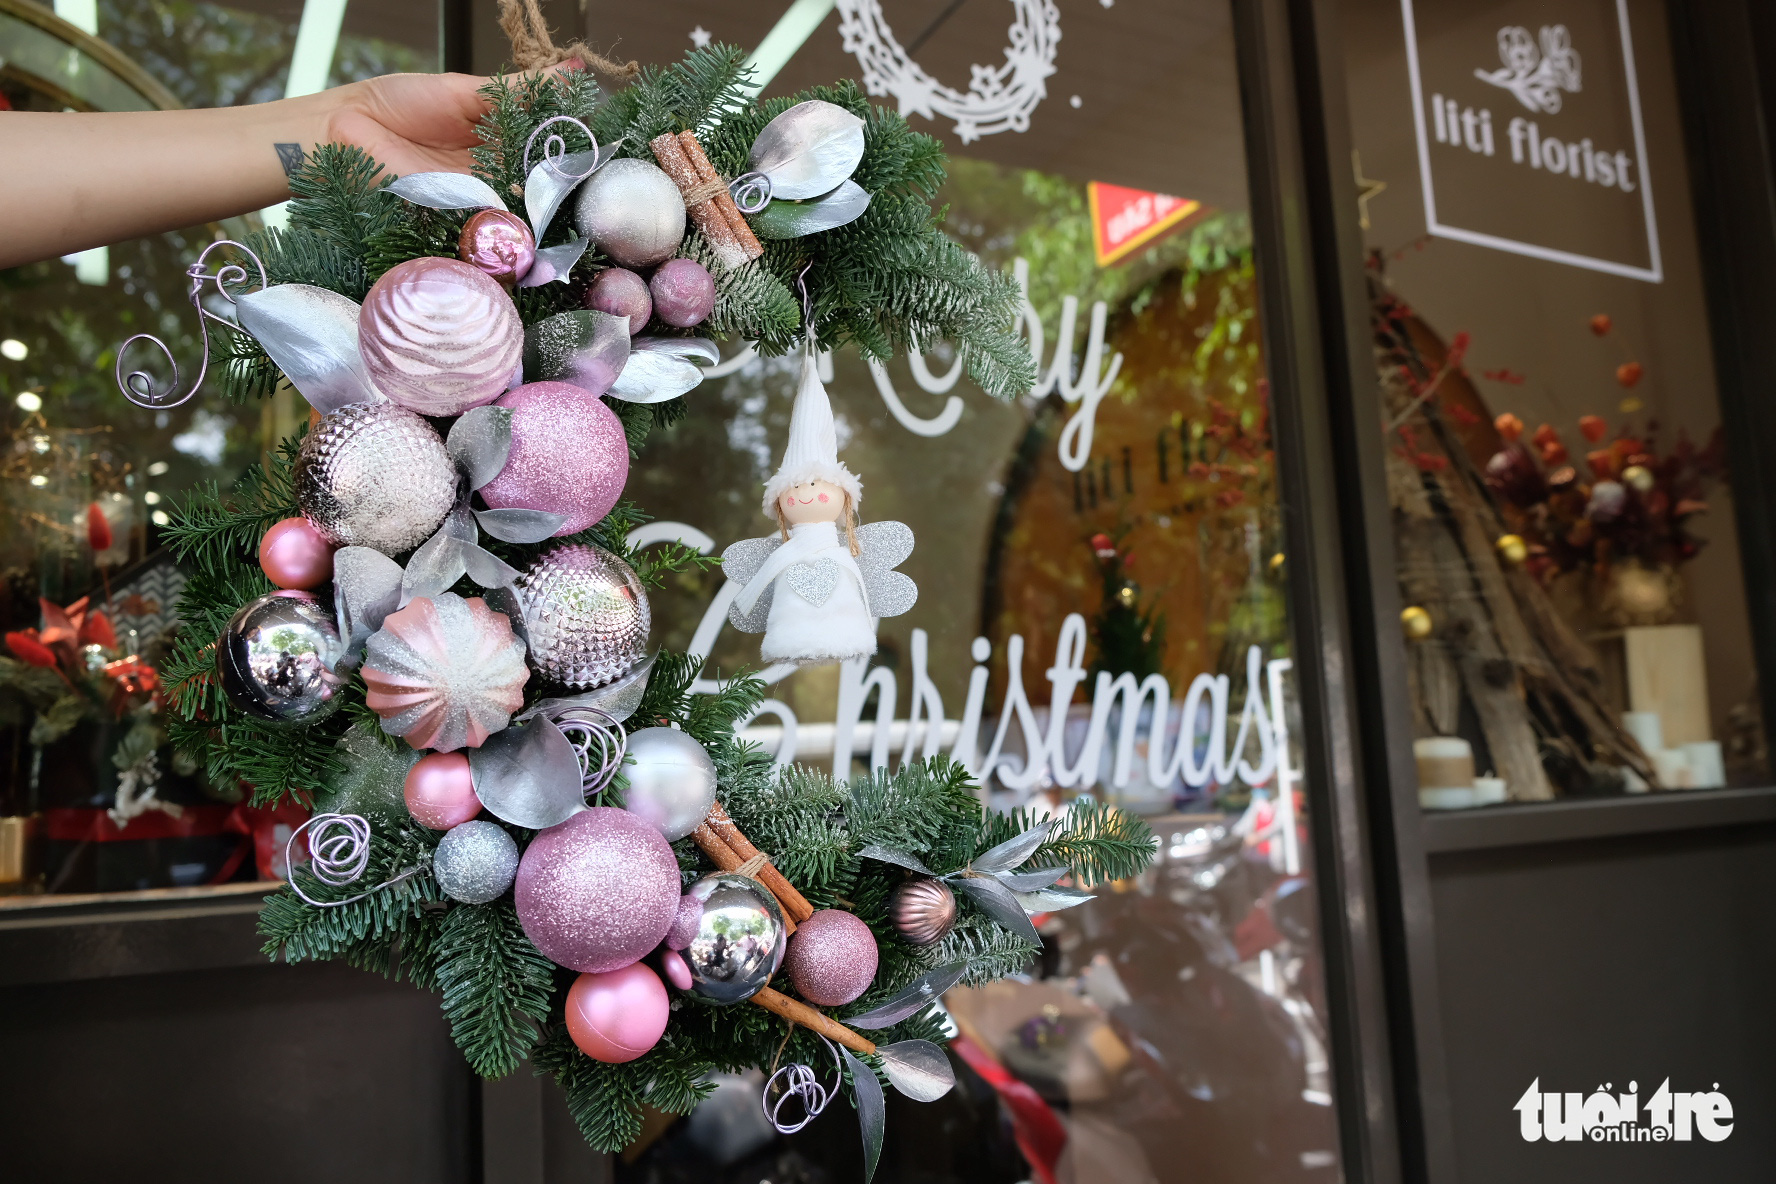 A Christmas laurel wreath made from fresh pine tree branches and ornaments is decorated at a store in Ho Chi Minh City. Photo: Bong Mai / Tuoi Tre